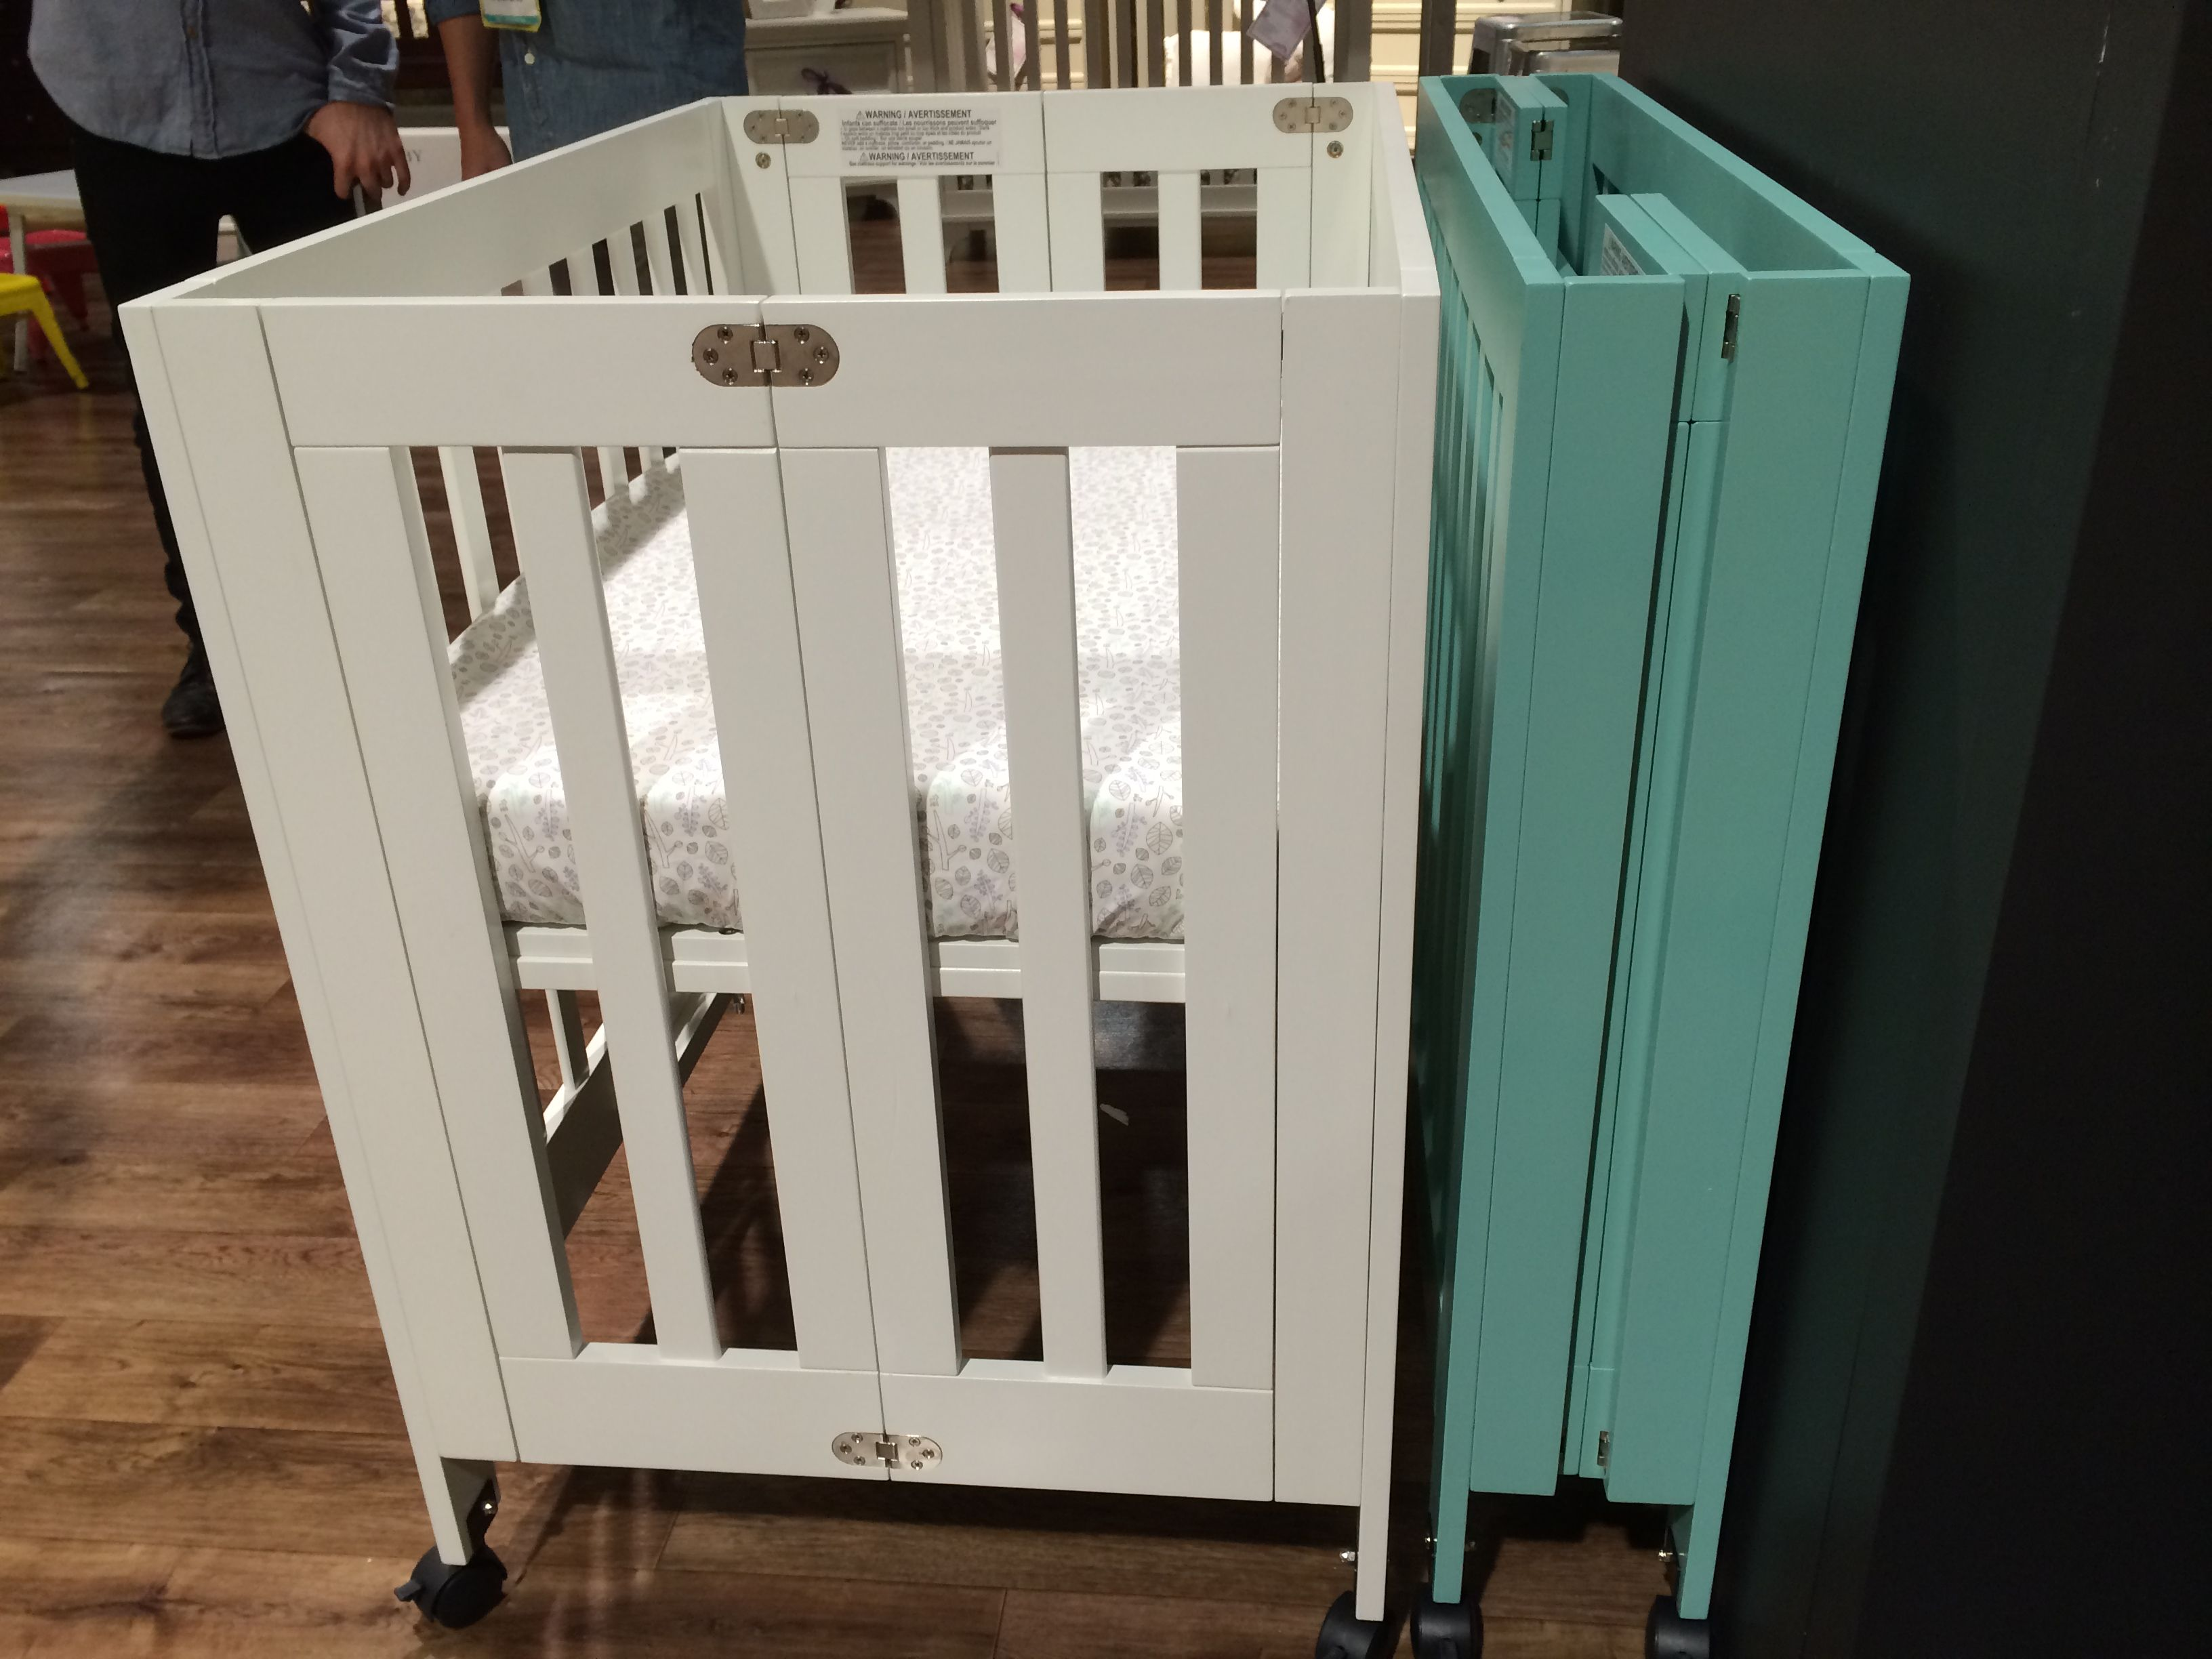 standard crib dimensions furniture baby origami and white teds grayson sniglar convertible phil compact with reviews alma bedroom mattress cot age mini urban walmartcom walmart babyletto ikea vs bloom cribs sunbury portable travel